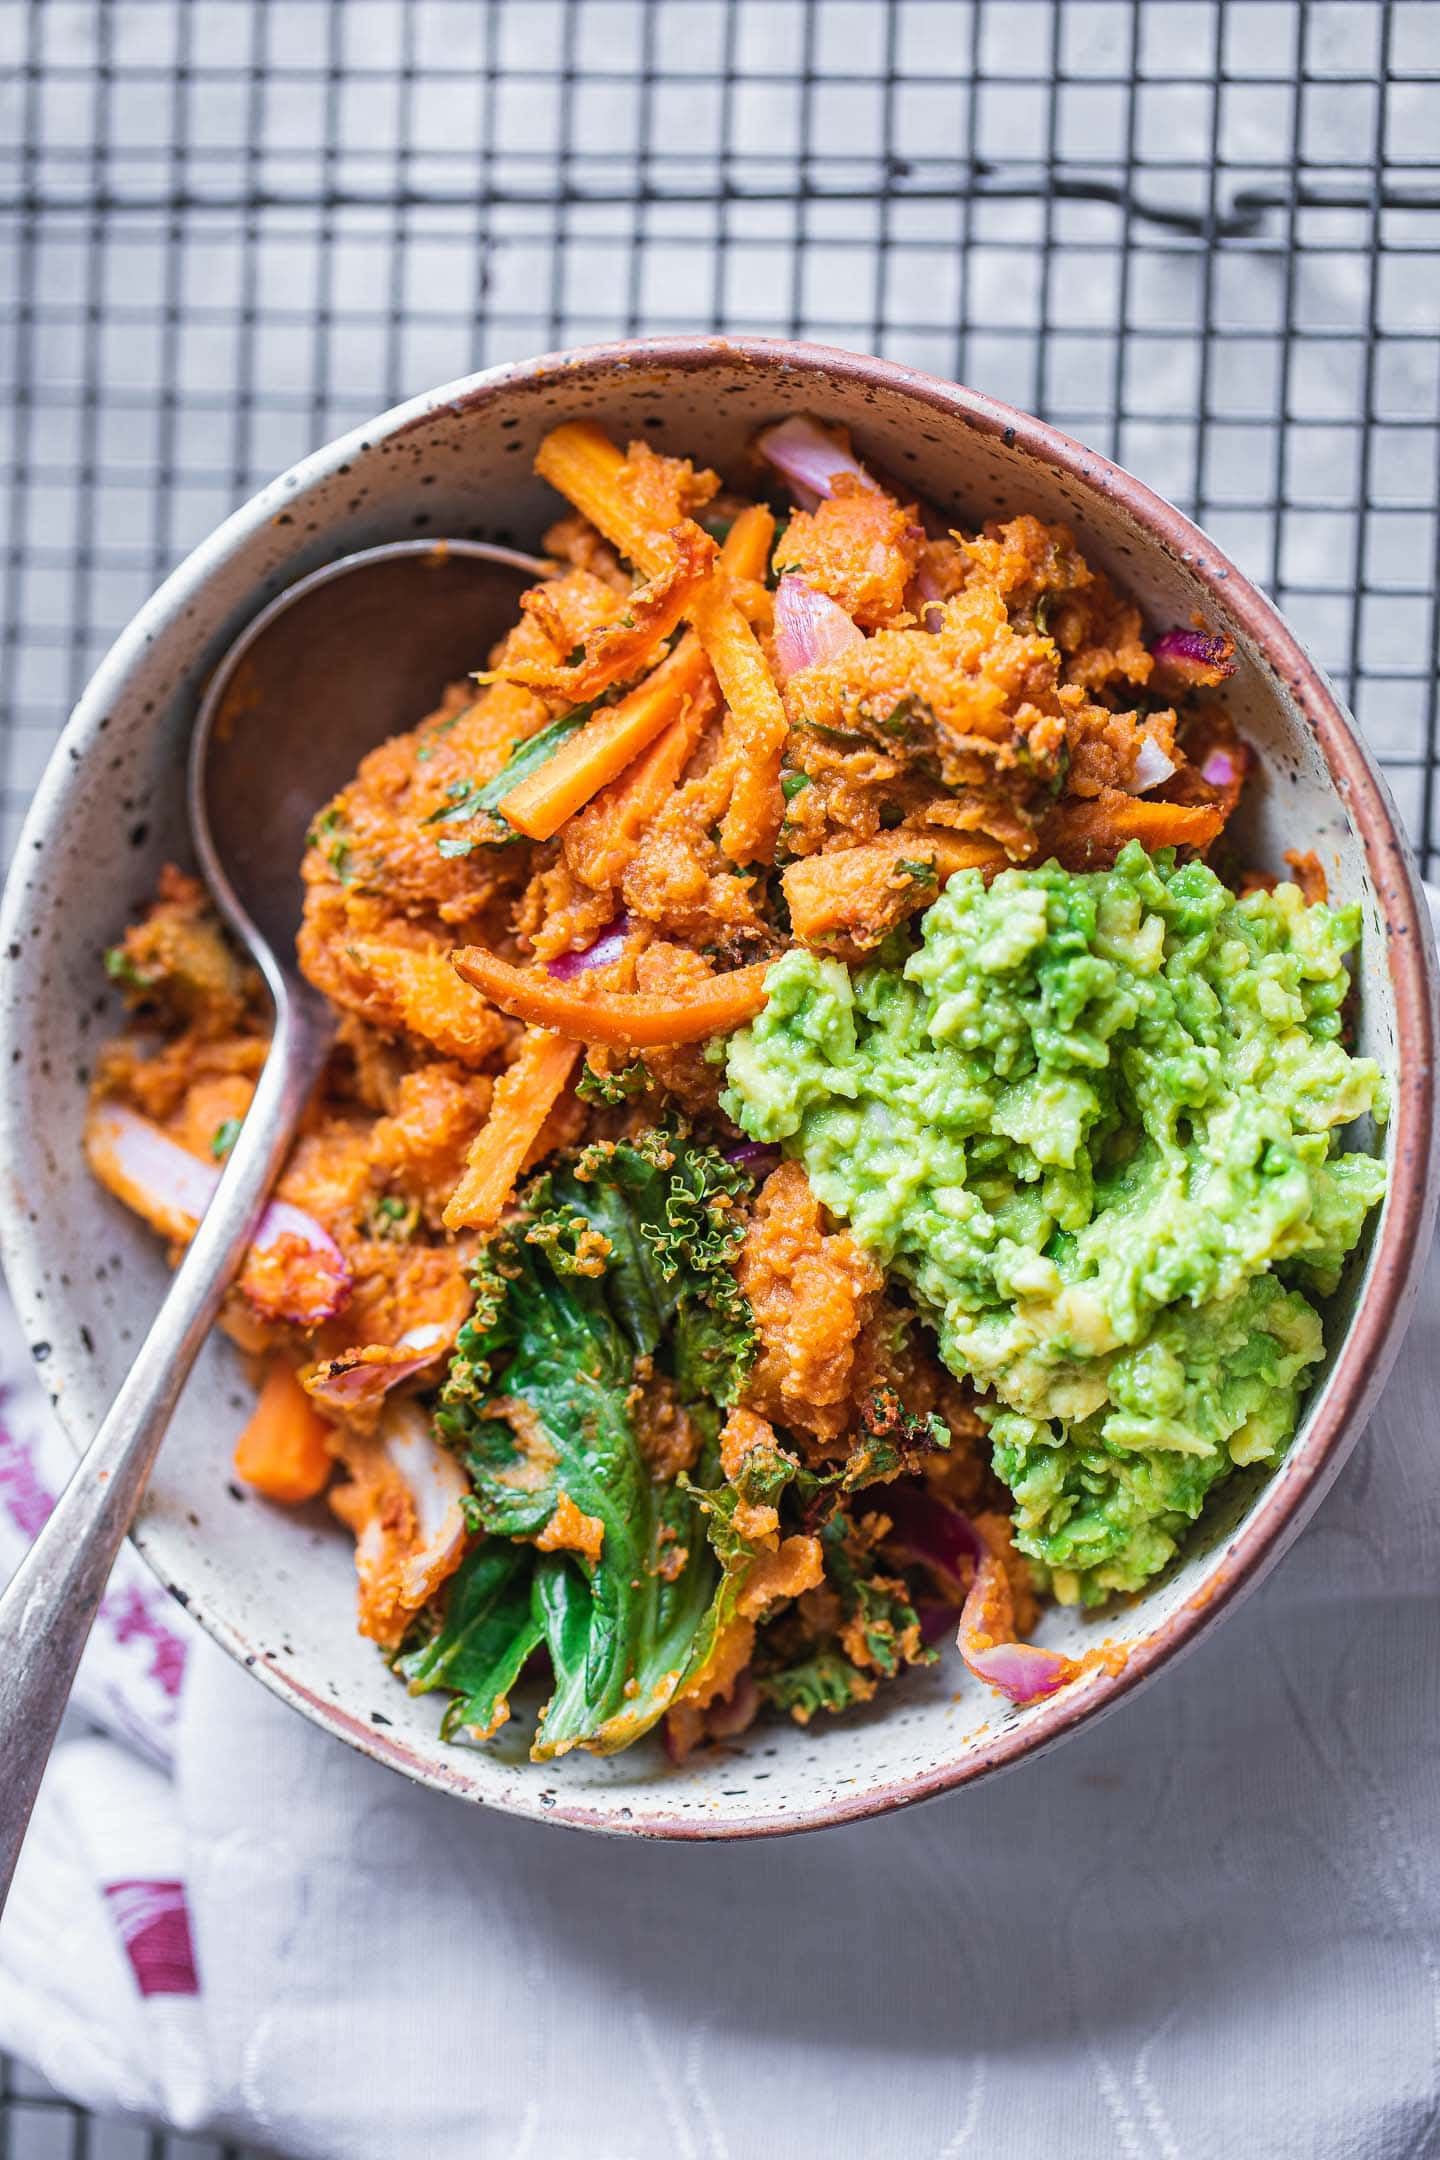 Vegan sweet potato casserole in a bowl with mashed avocado